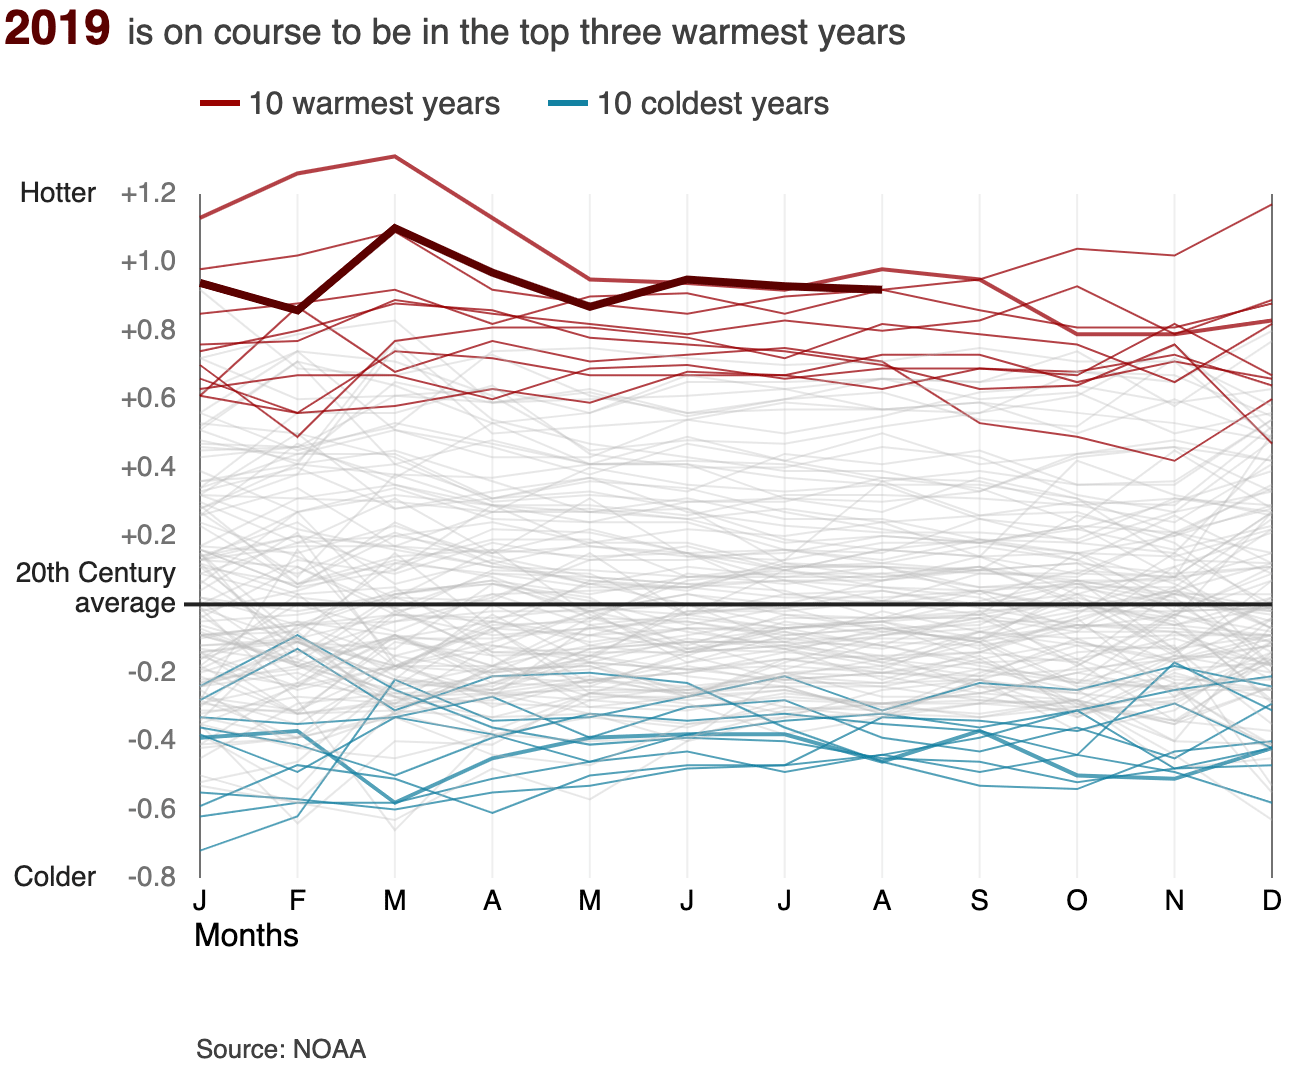 Animated chart showing that most of the coldest 10 years compared to the 20th century average were in the early 1900s while the warmest years have all been since 2000